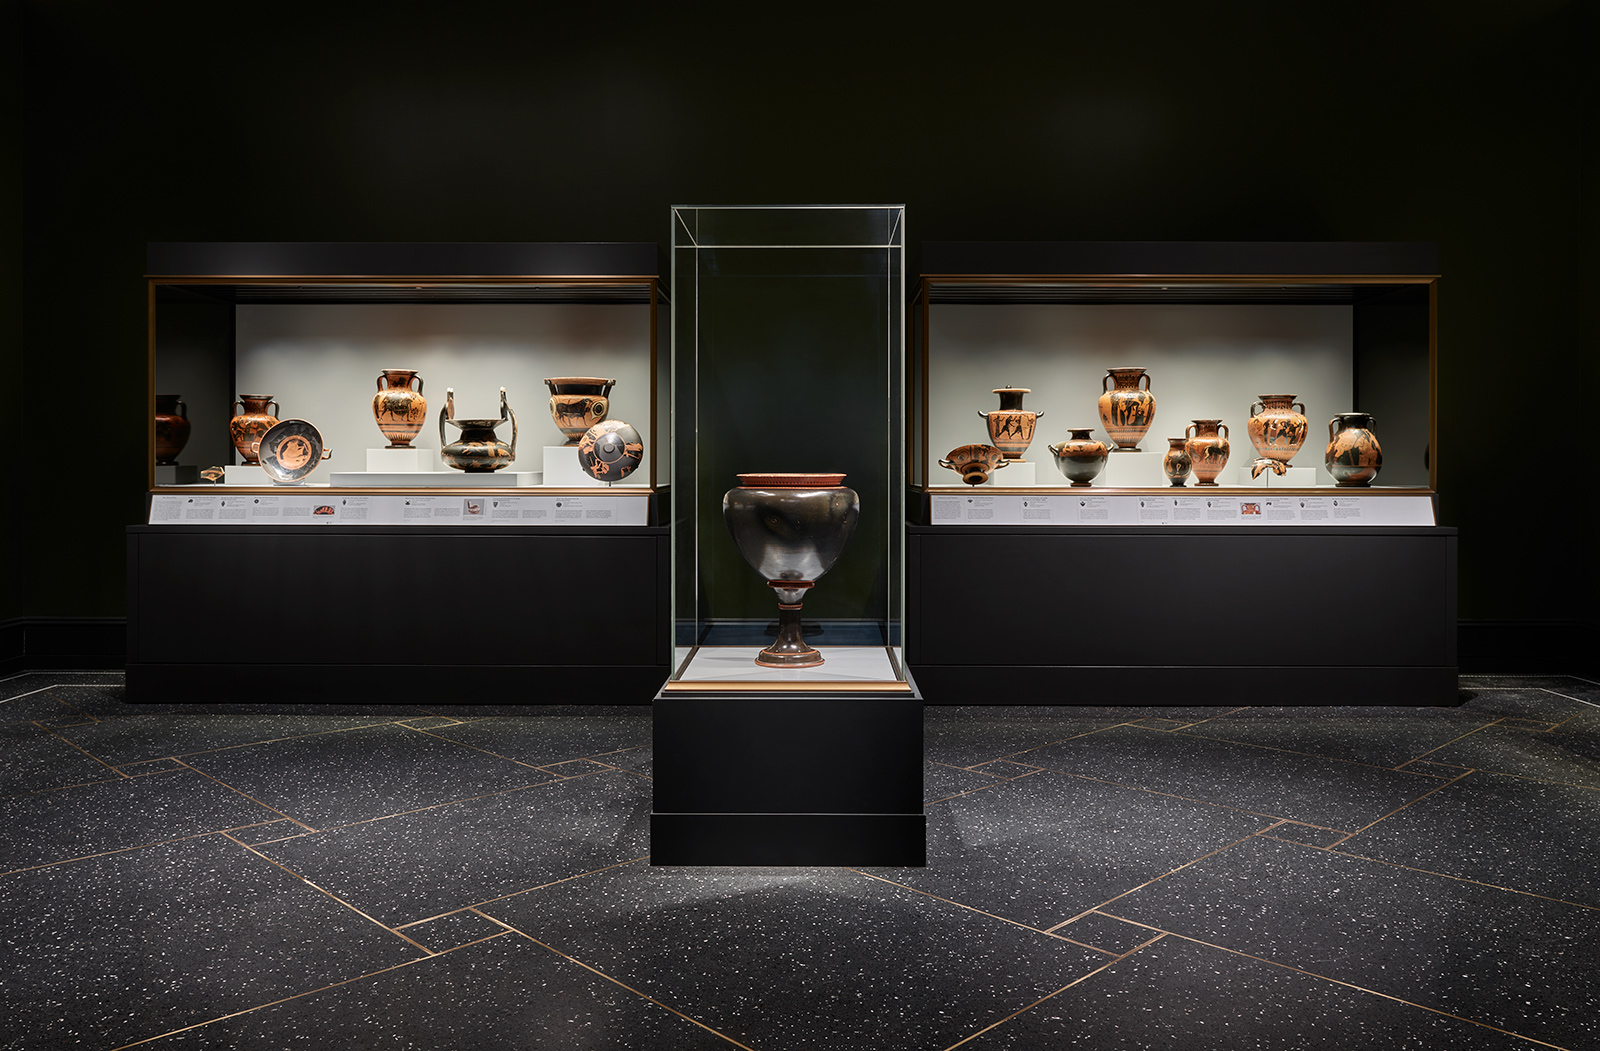 A darkly lit museum gallery with glass cases holding ancient Greek terracotta vessels